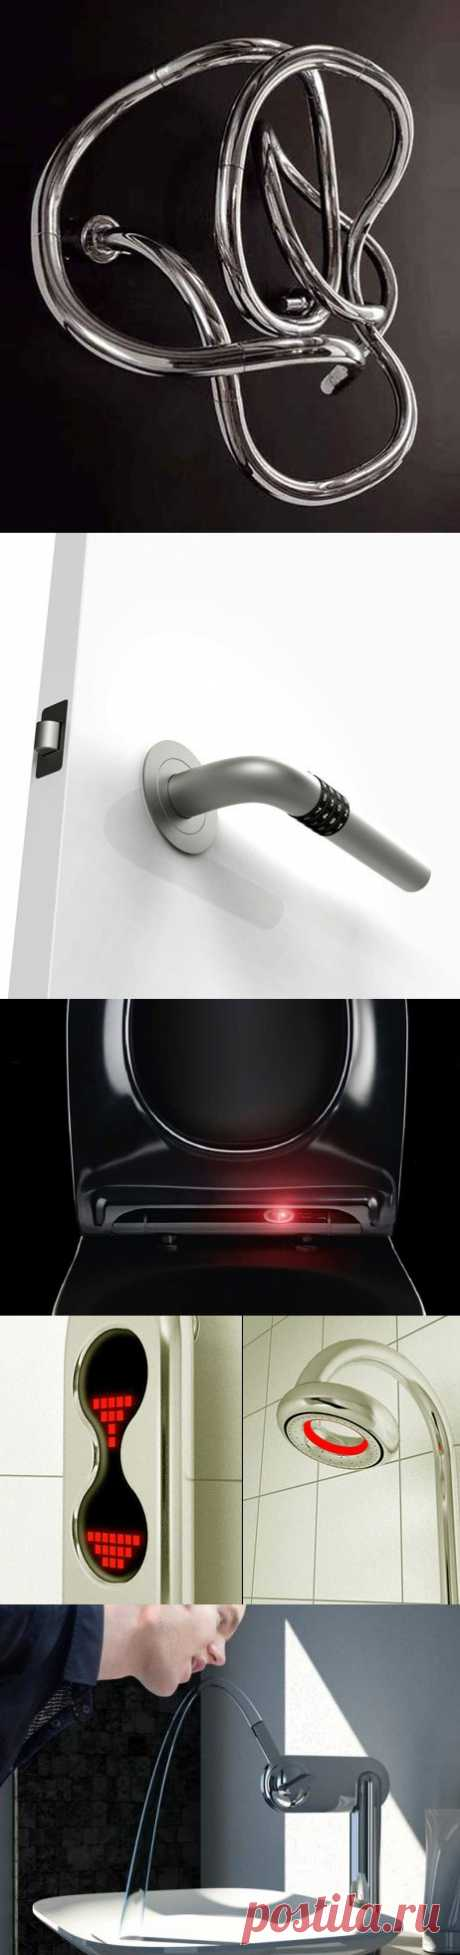 The most crazy ideas of modern repair. Namely: 1. The heated towel rail for a bathroom 2. The door handle for Stierlitz 3. The toilet, eee … is not present after all – a clever toilet bowl 4. Kopek for a shower moreover and with illumination. 5. The crane fountainlet, as in old kind times.